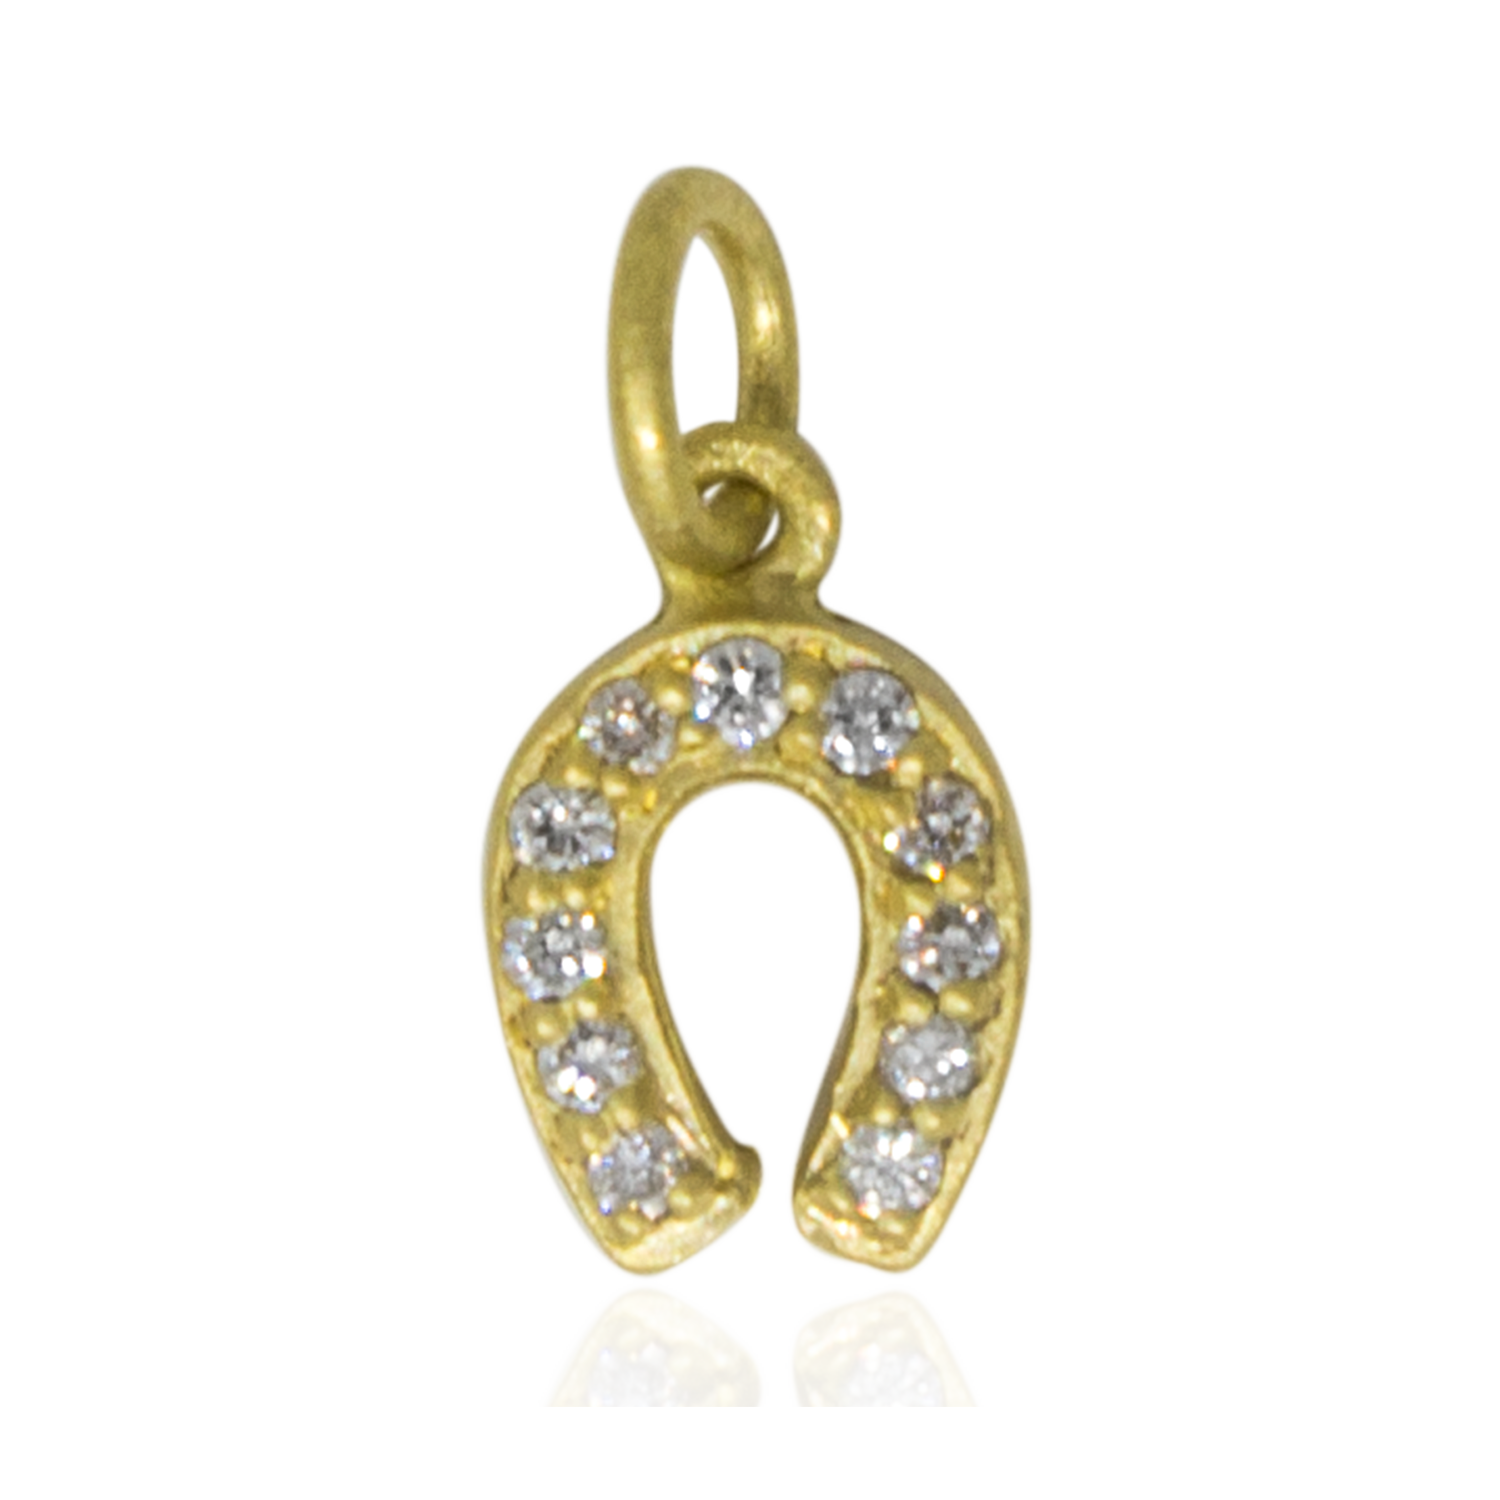 Diamond Horseshoe Charm